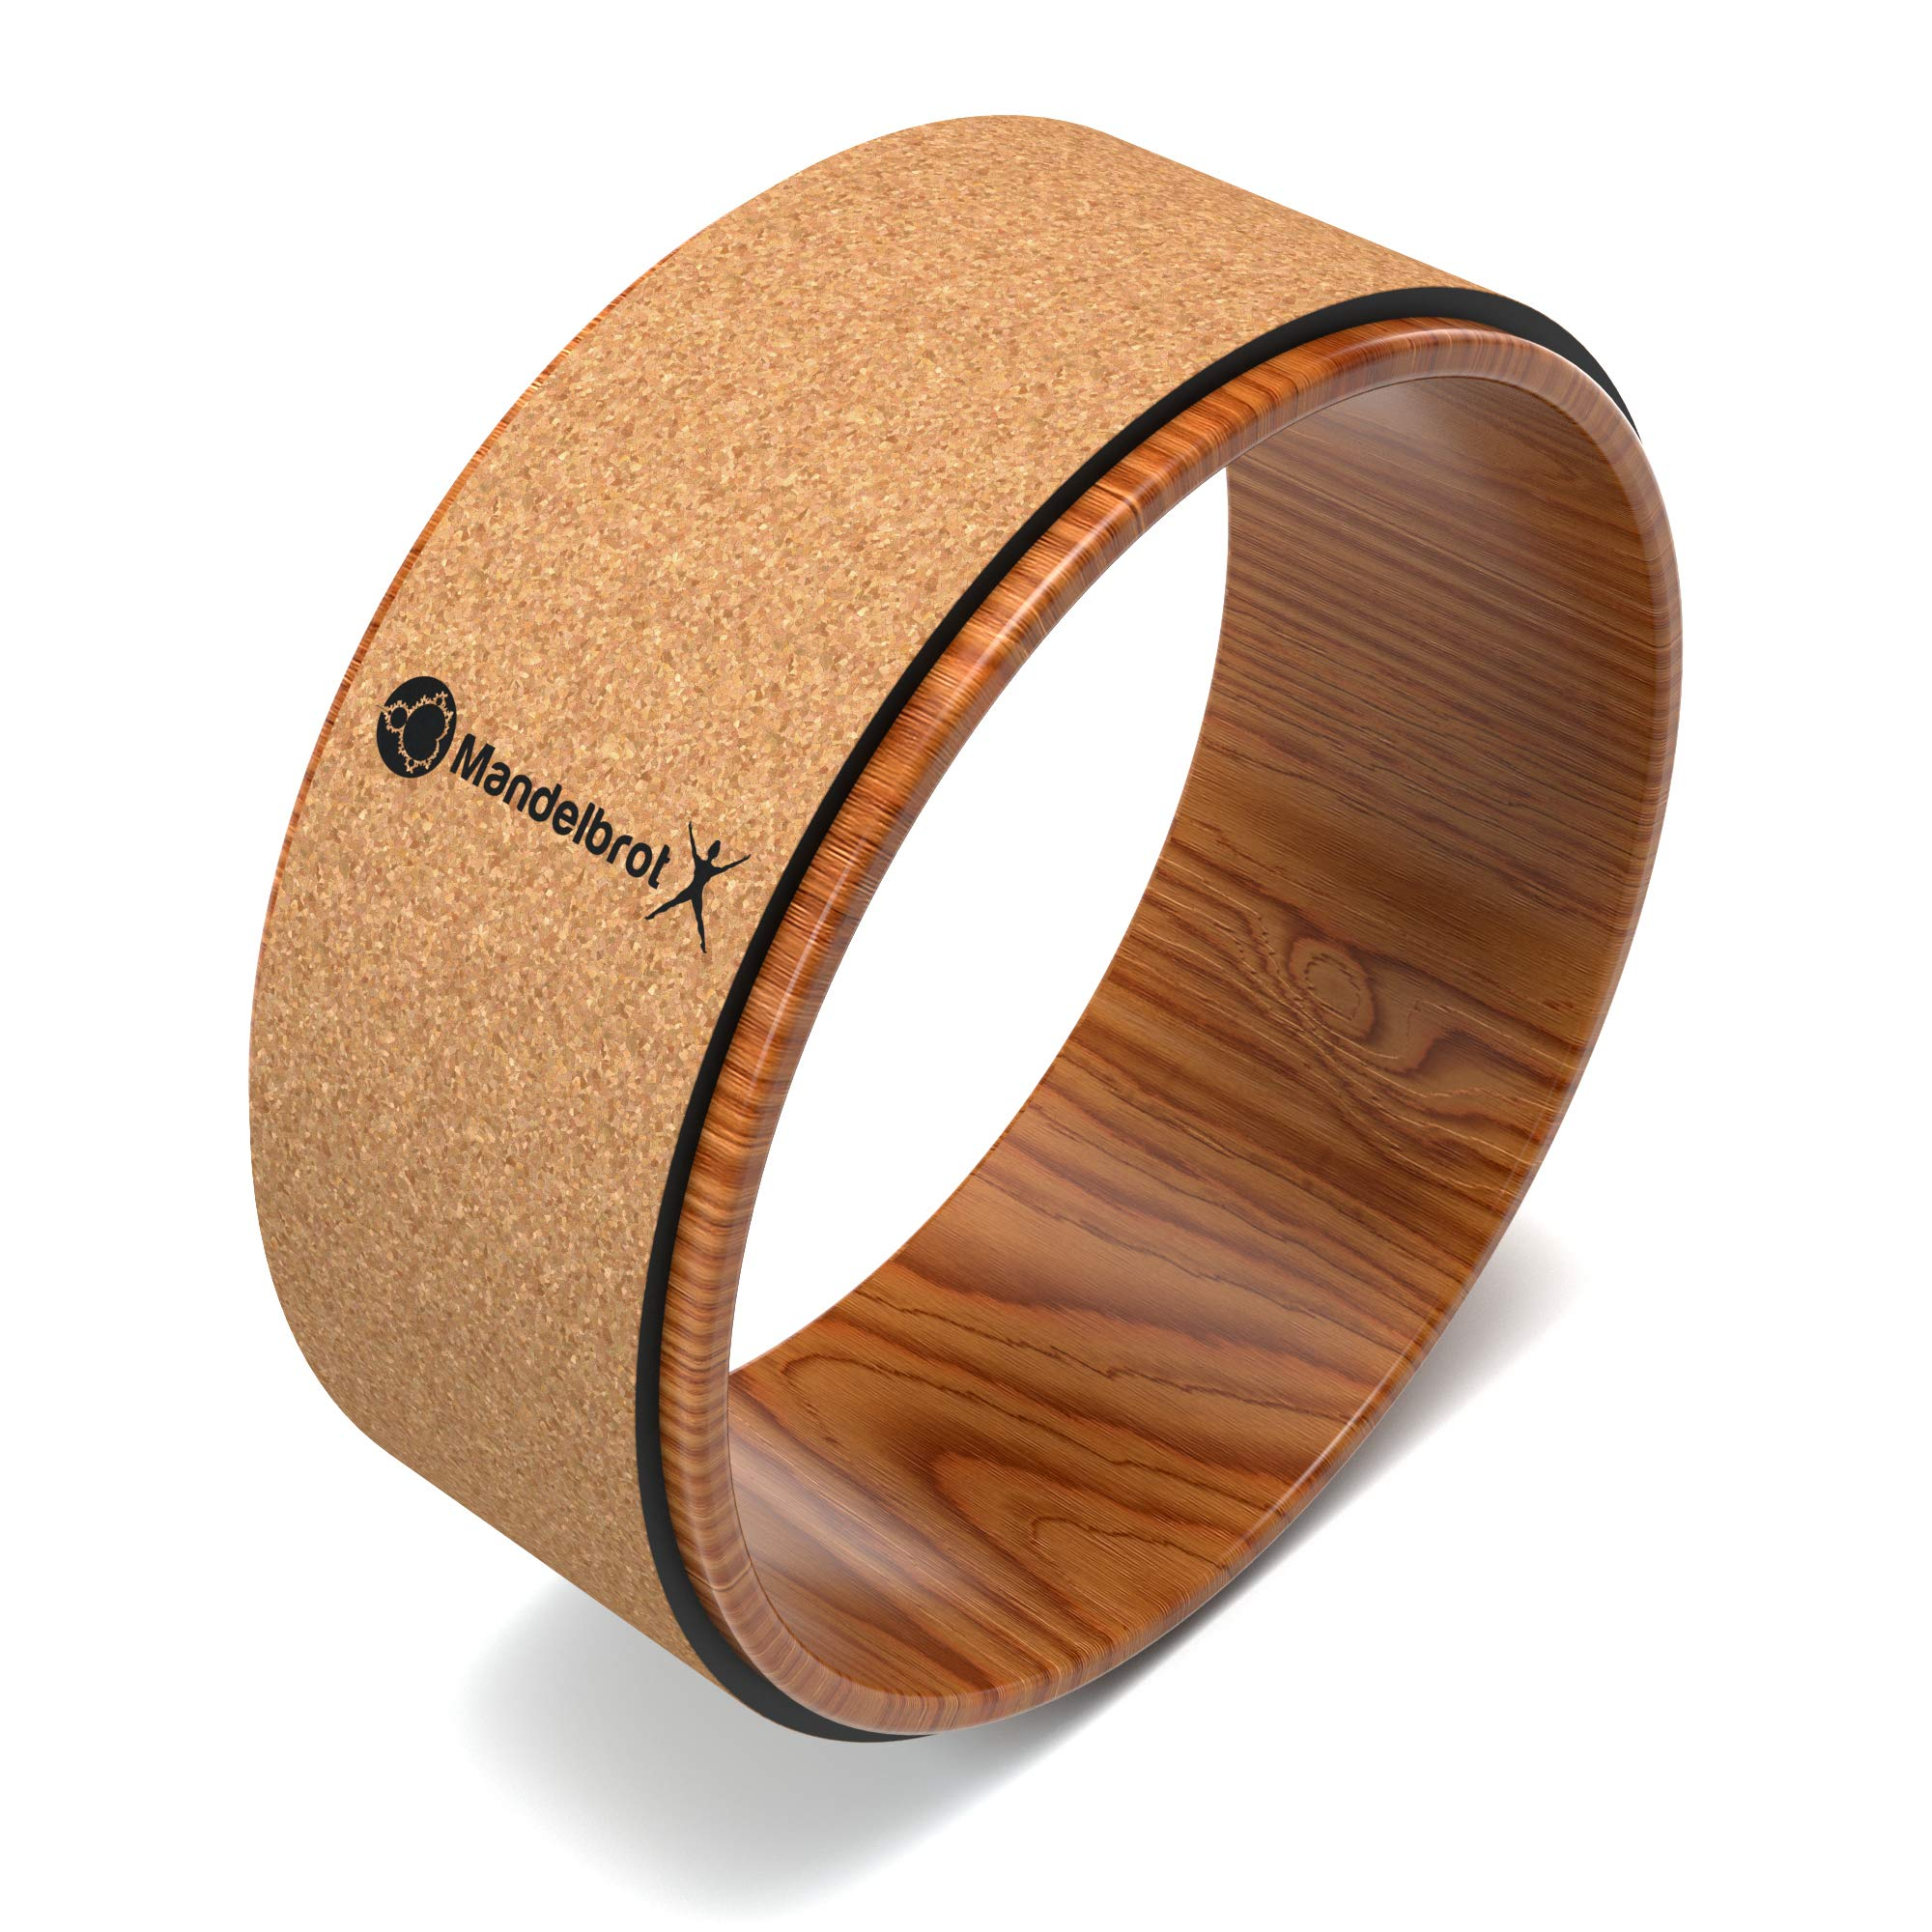 Mandelbrot Yoga X Cork Yoga Wheel   All Fitness Levels, Everything You Need with Latest Cork Design. Cork rolling surface, 12.6in diameter, 5.1in wide. The best back opener and stretcher available